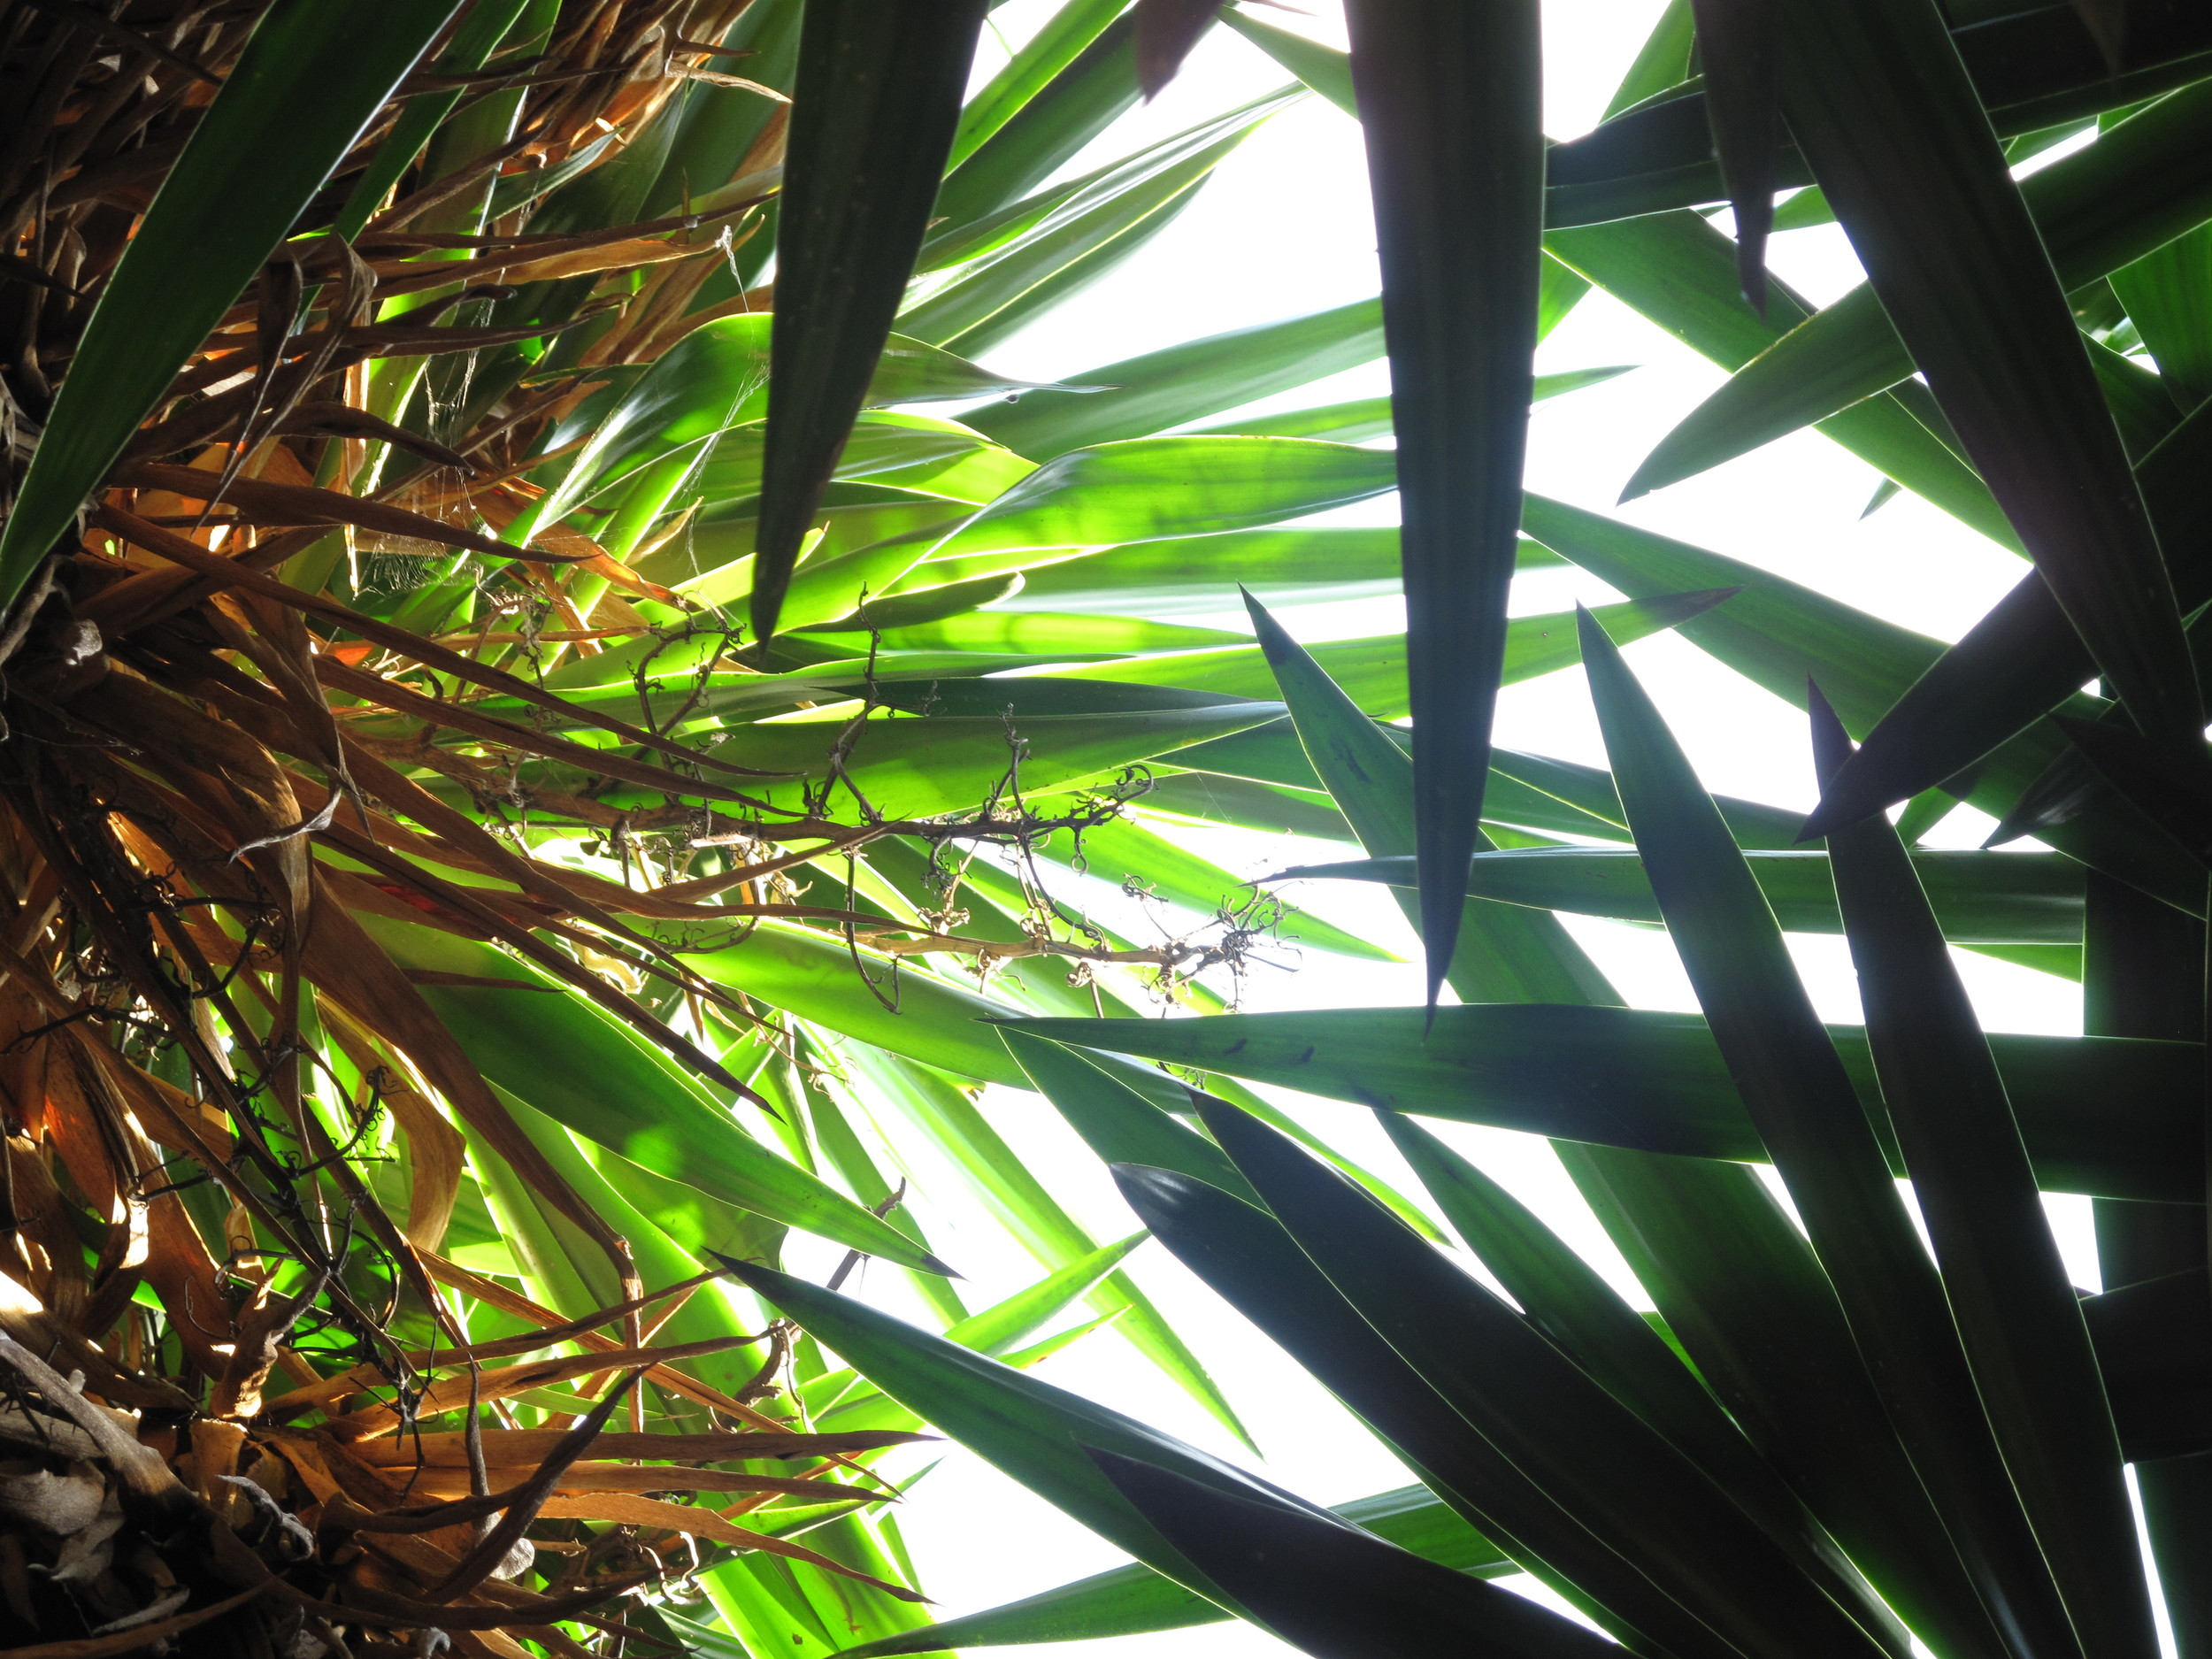 Looking up at the palm fronds and sky from my hammock position